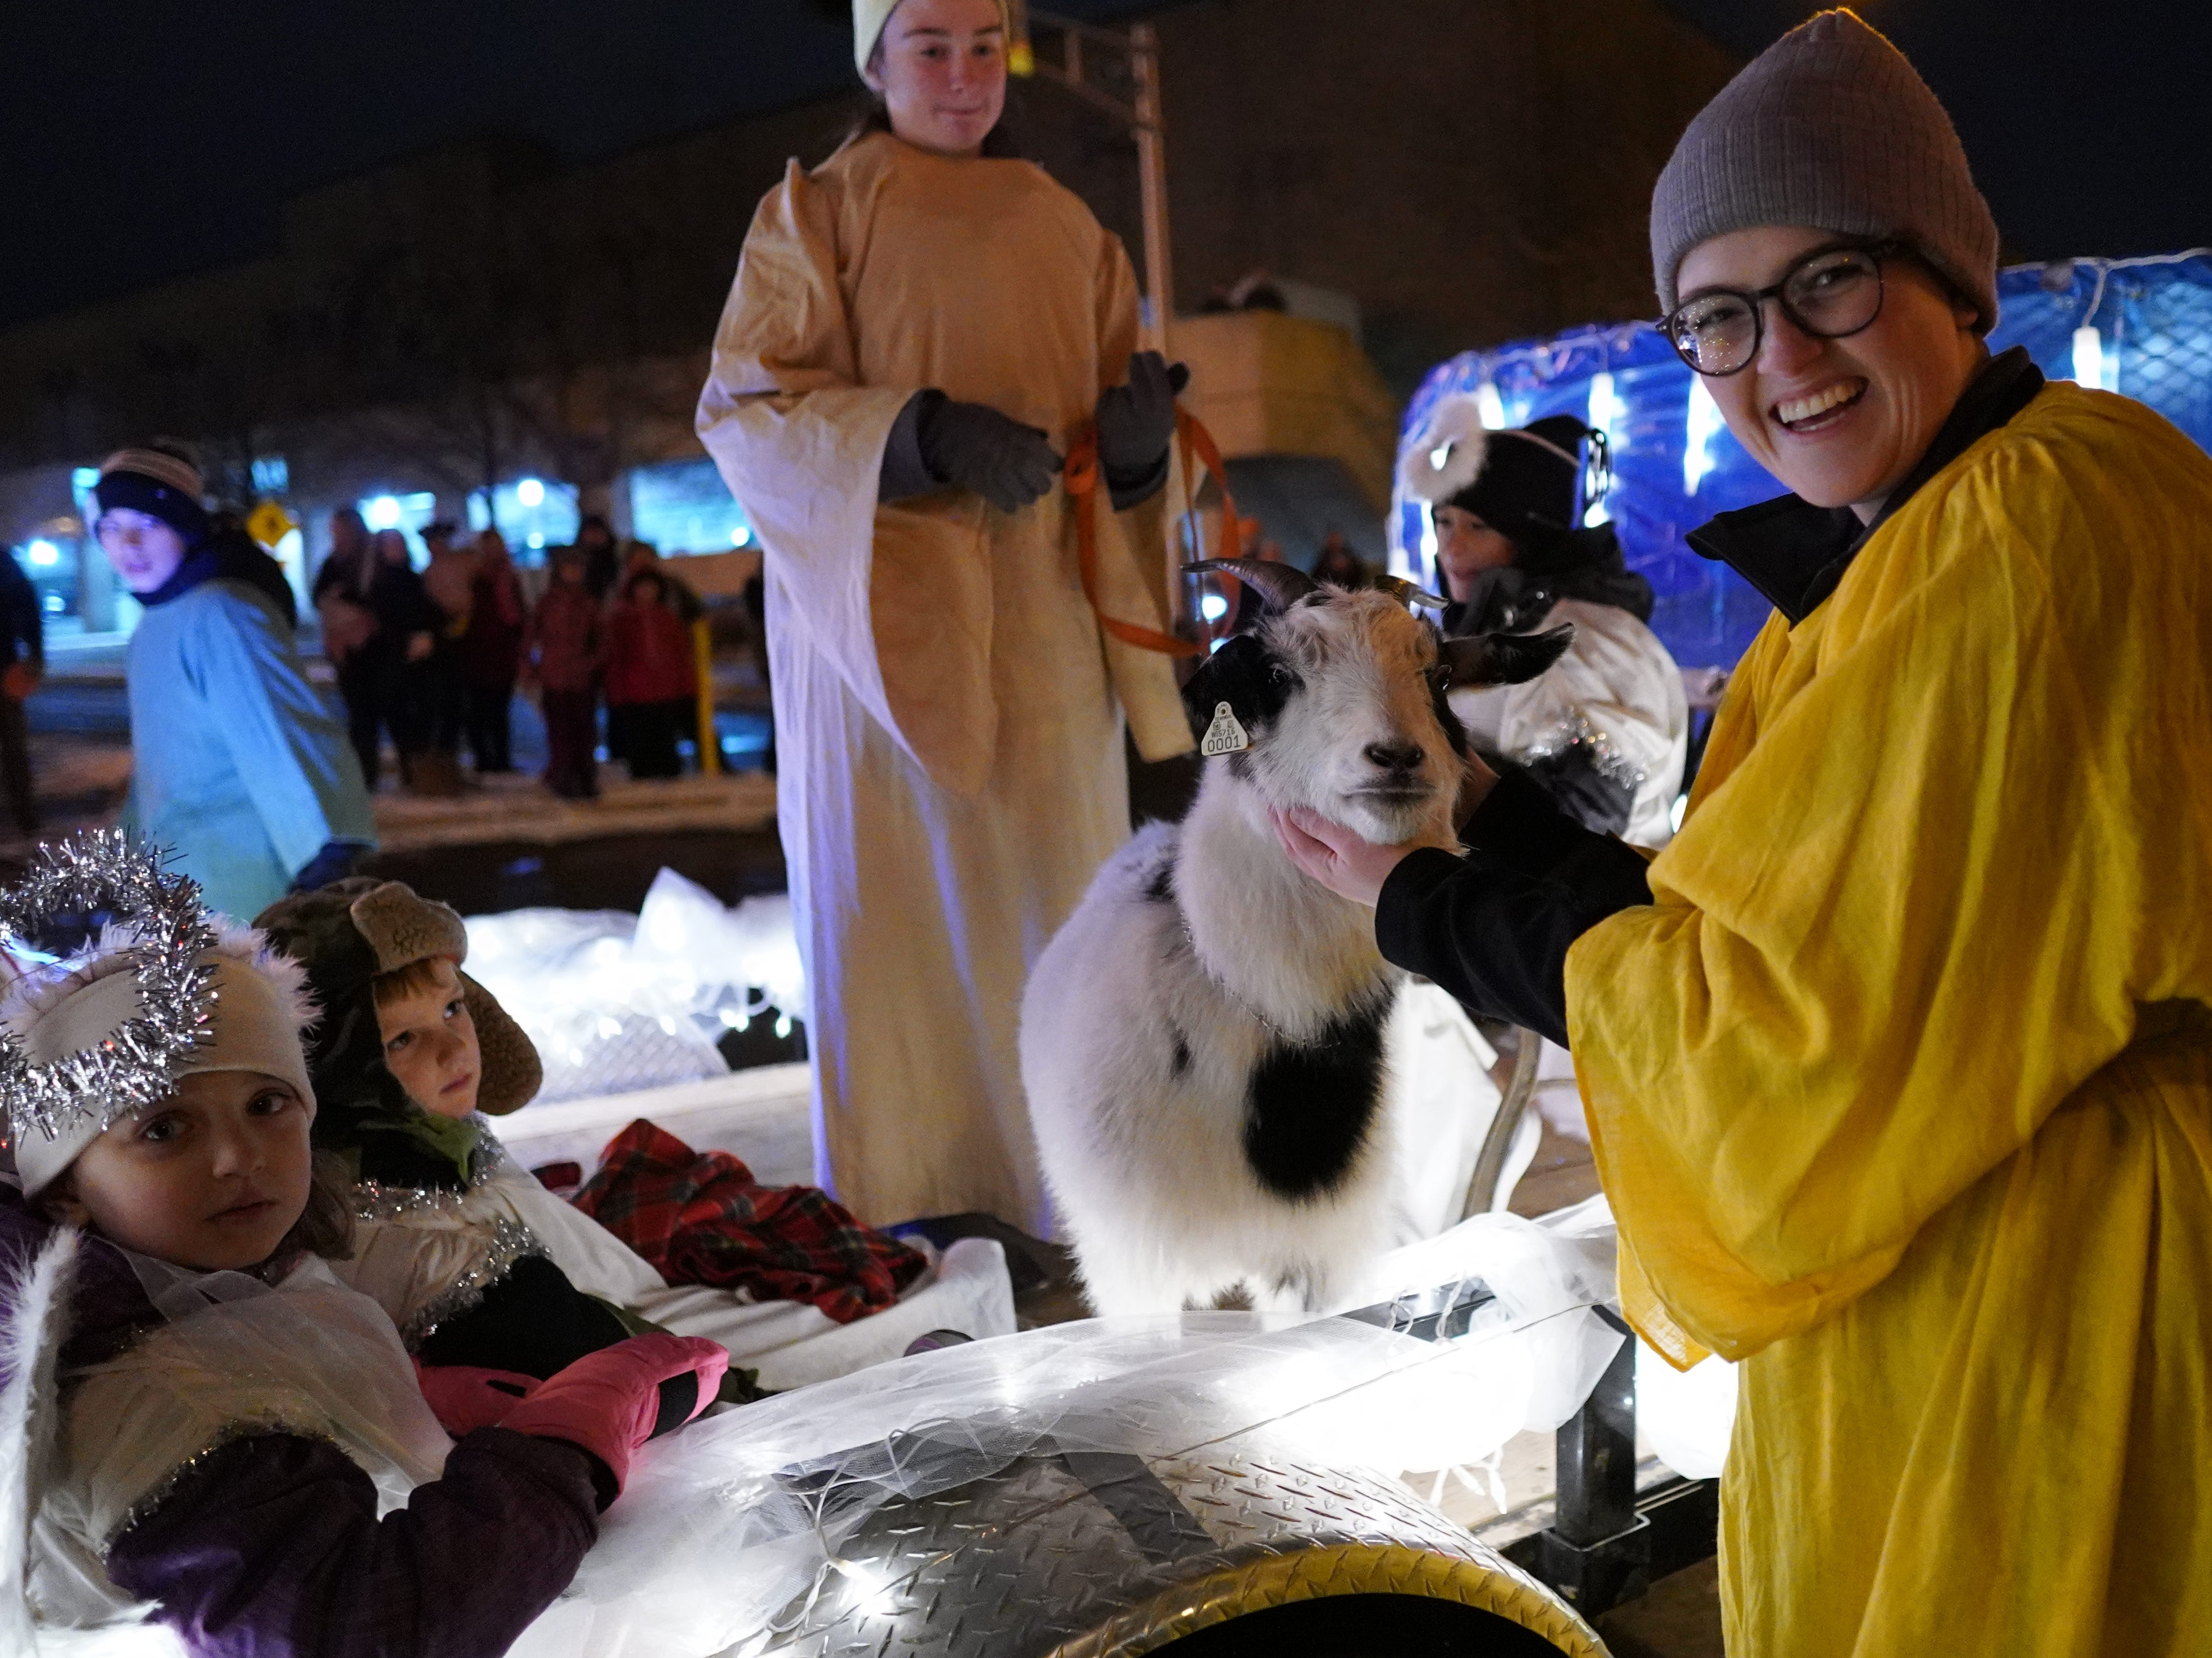 People line alongside the streets to watch the Wausau Holiday Parade flows from the Marathon Park through Stewart Avenue to the 400 Block Friday night in Wausau, Wisc. T'xer Zhon Kha/USA TODAY NETWORK-Wisconsin